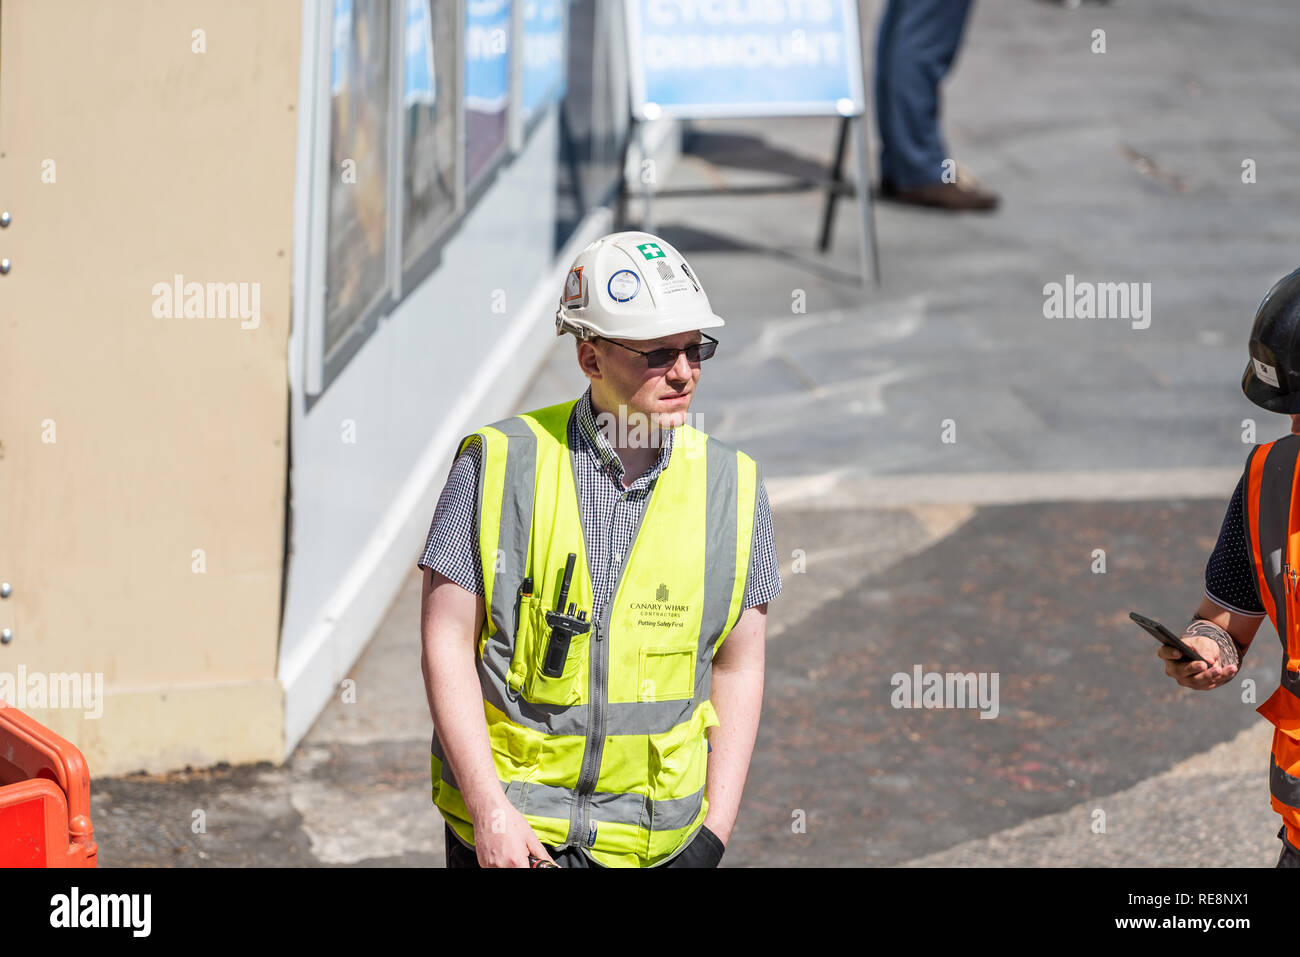 London, UK - June 22, 2018: High angle view on one construction worker, man with neon yellow green uniform vest clothing with helmet on city street - Stock Image